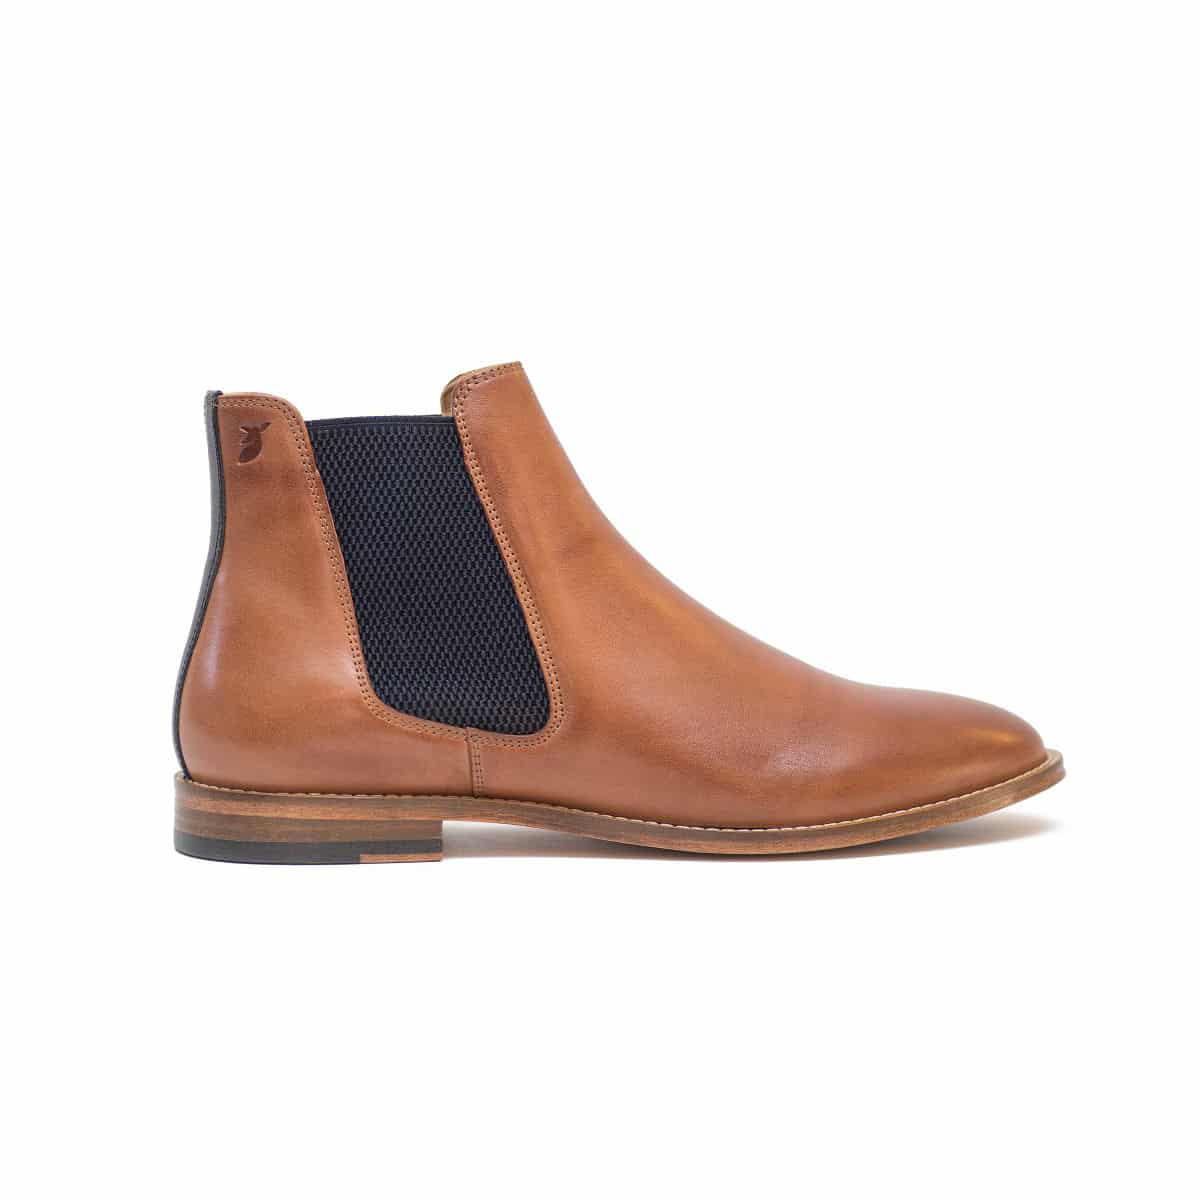 Boots Chelsea Cognac and Blue Night by Pied de Biche